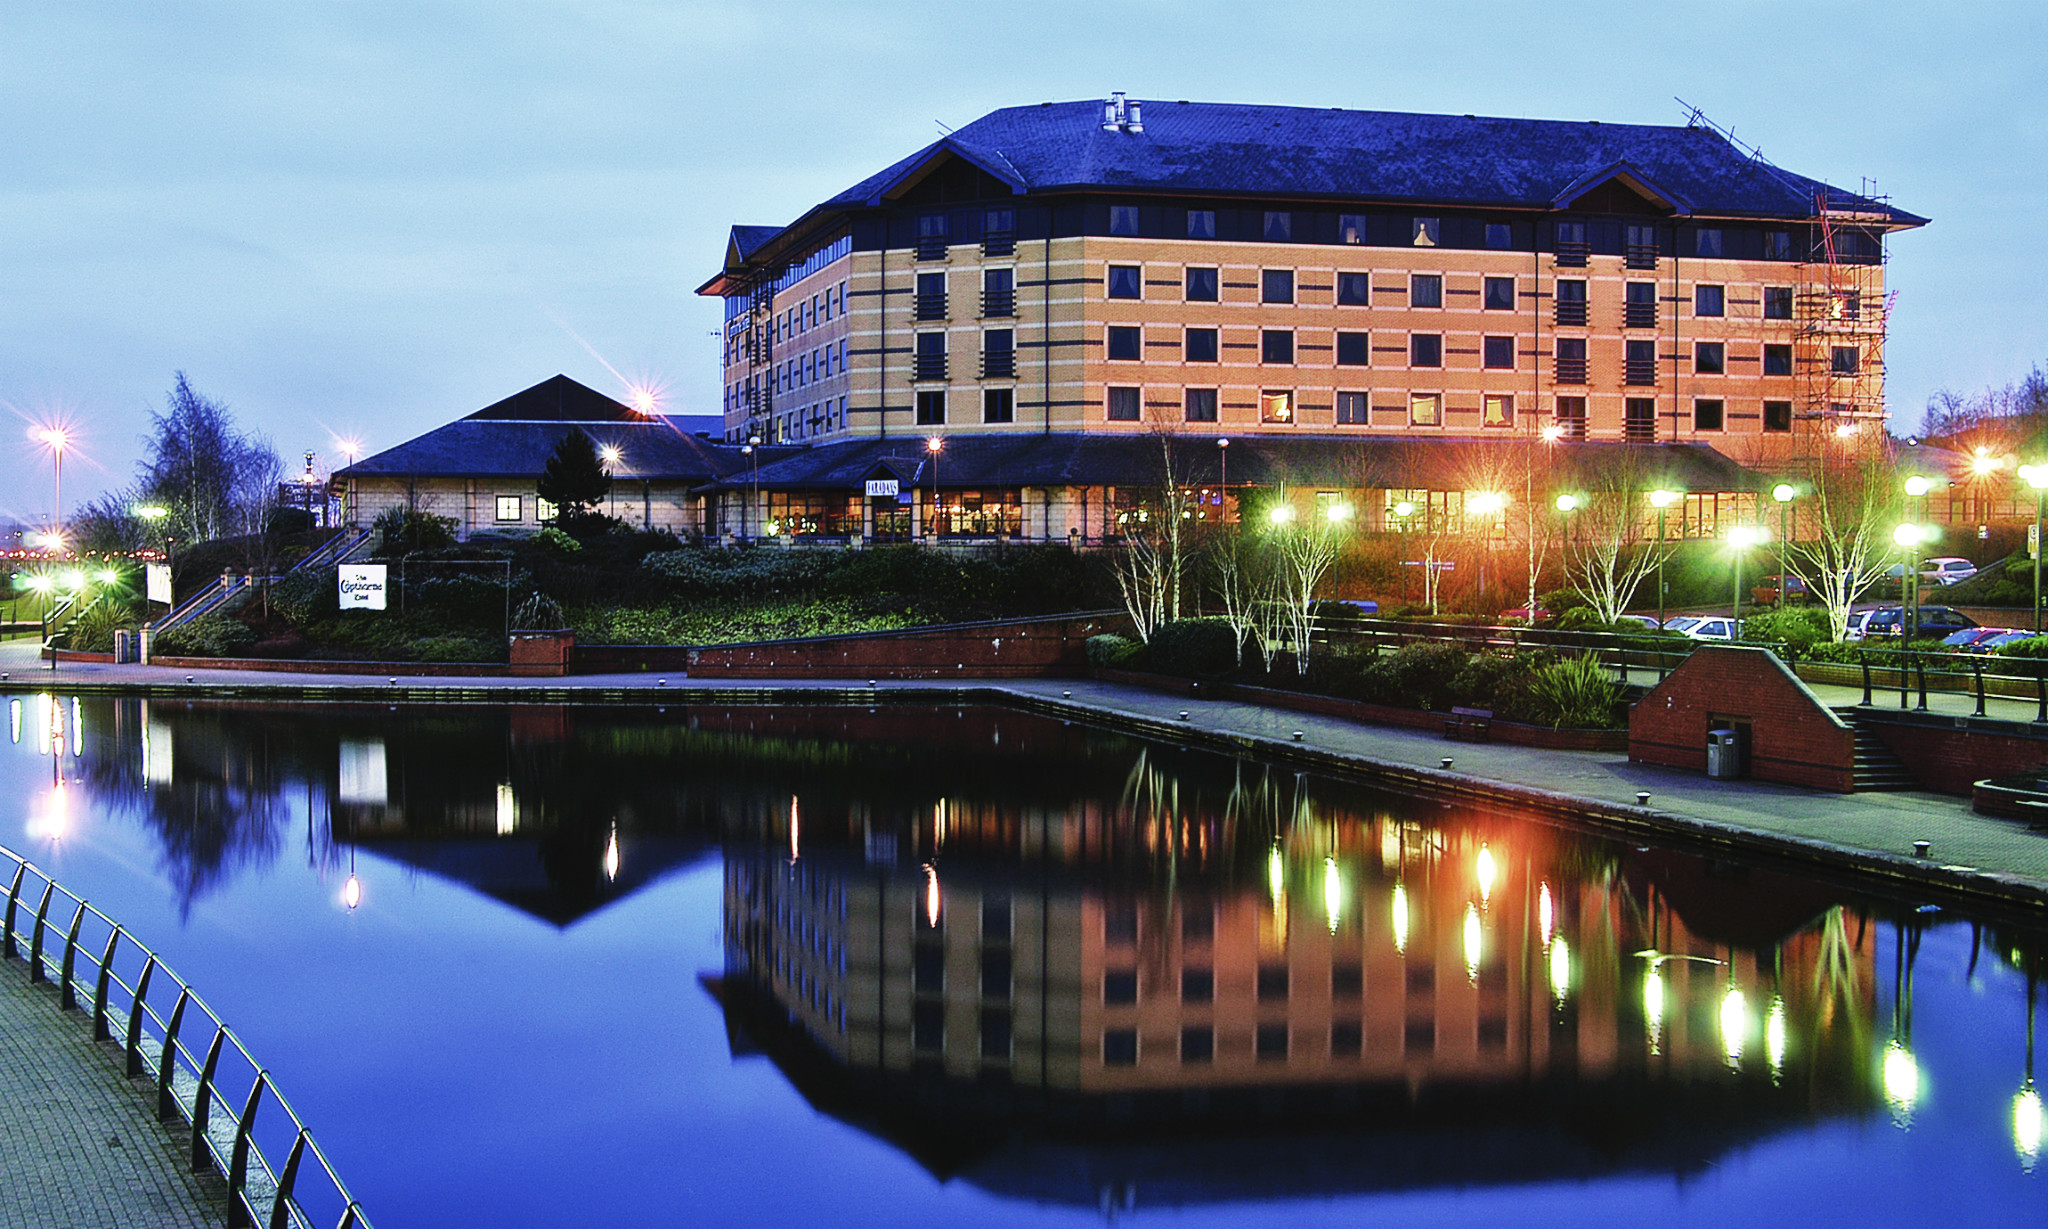 Copthorne Hotel Merry Hill Dudley Deal Of The Day Groupon